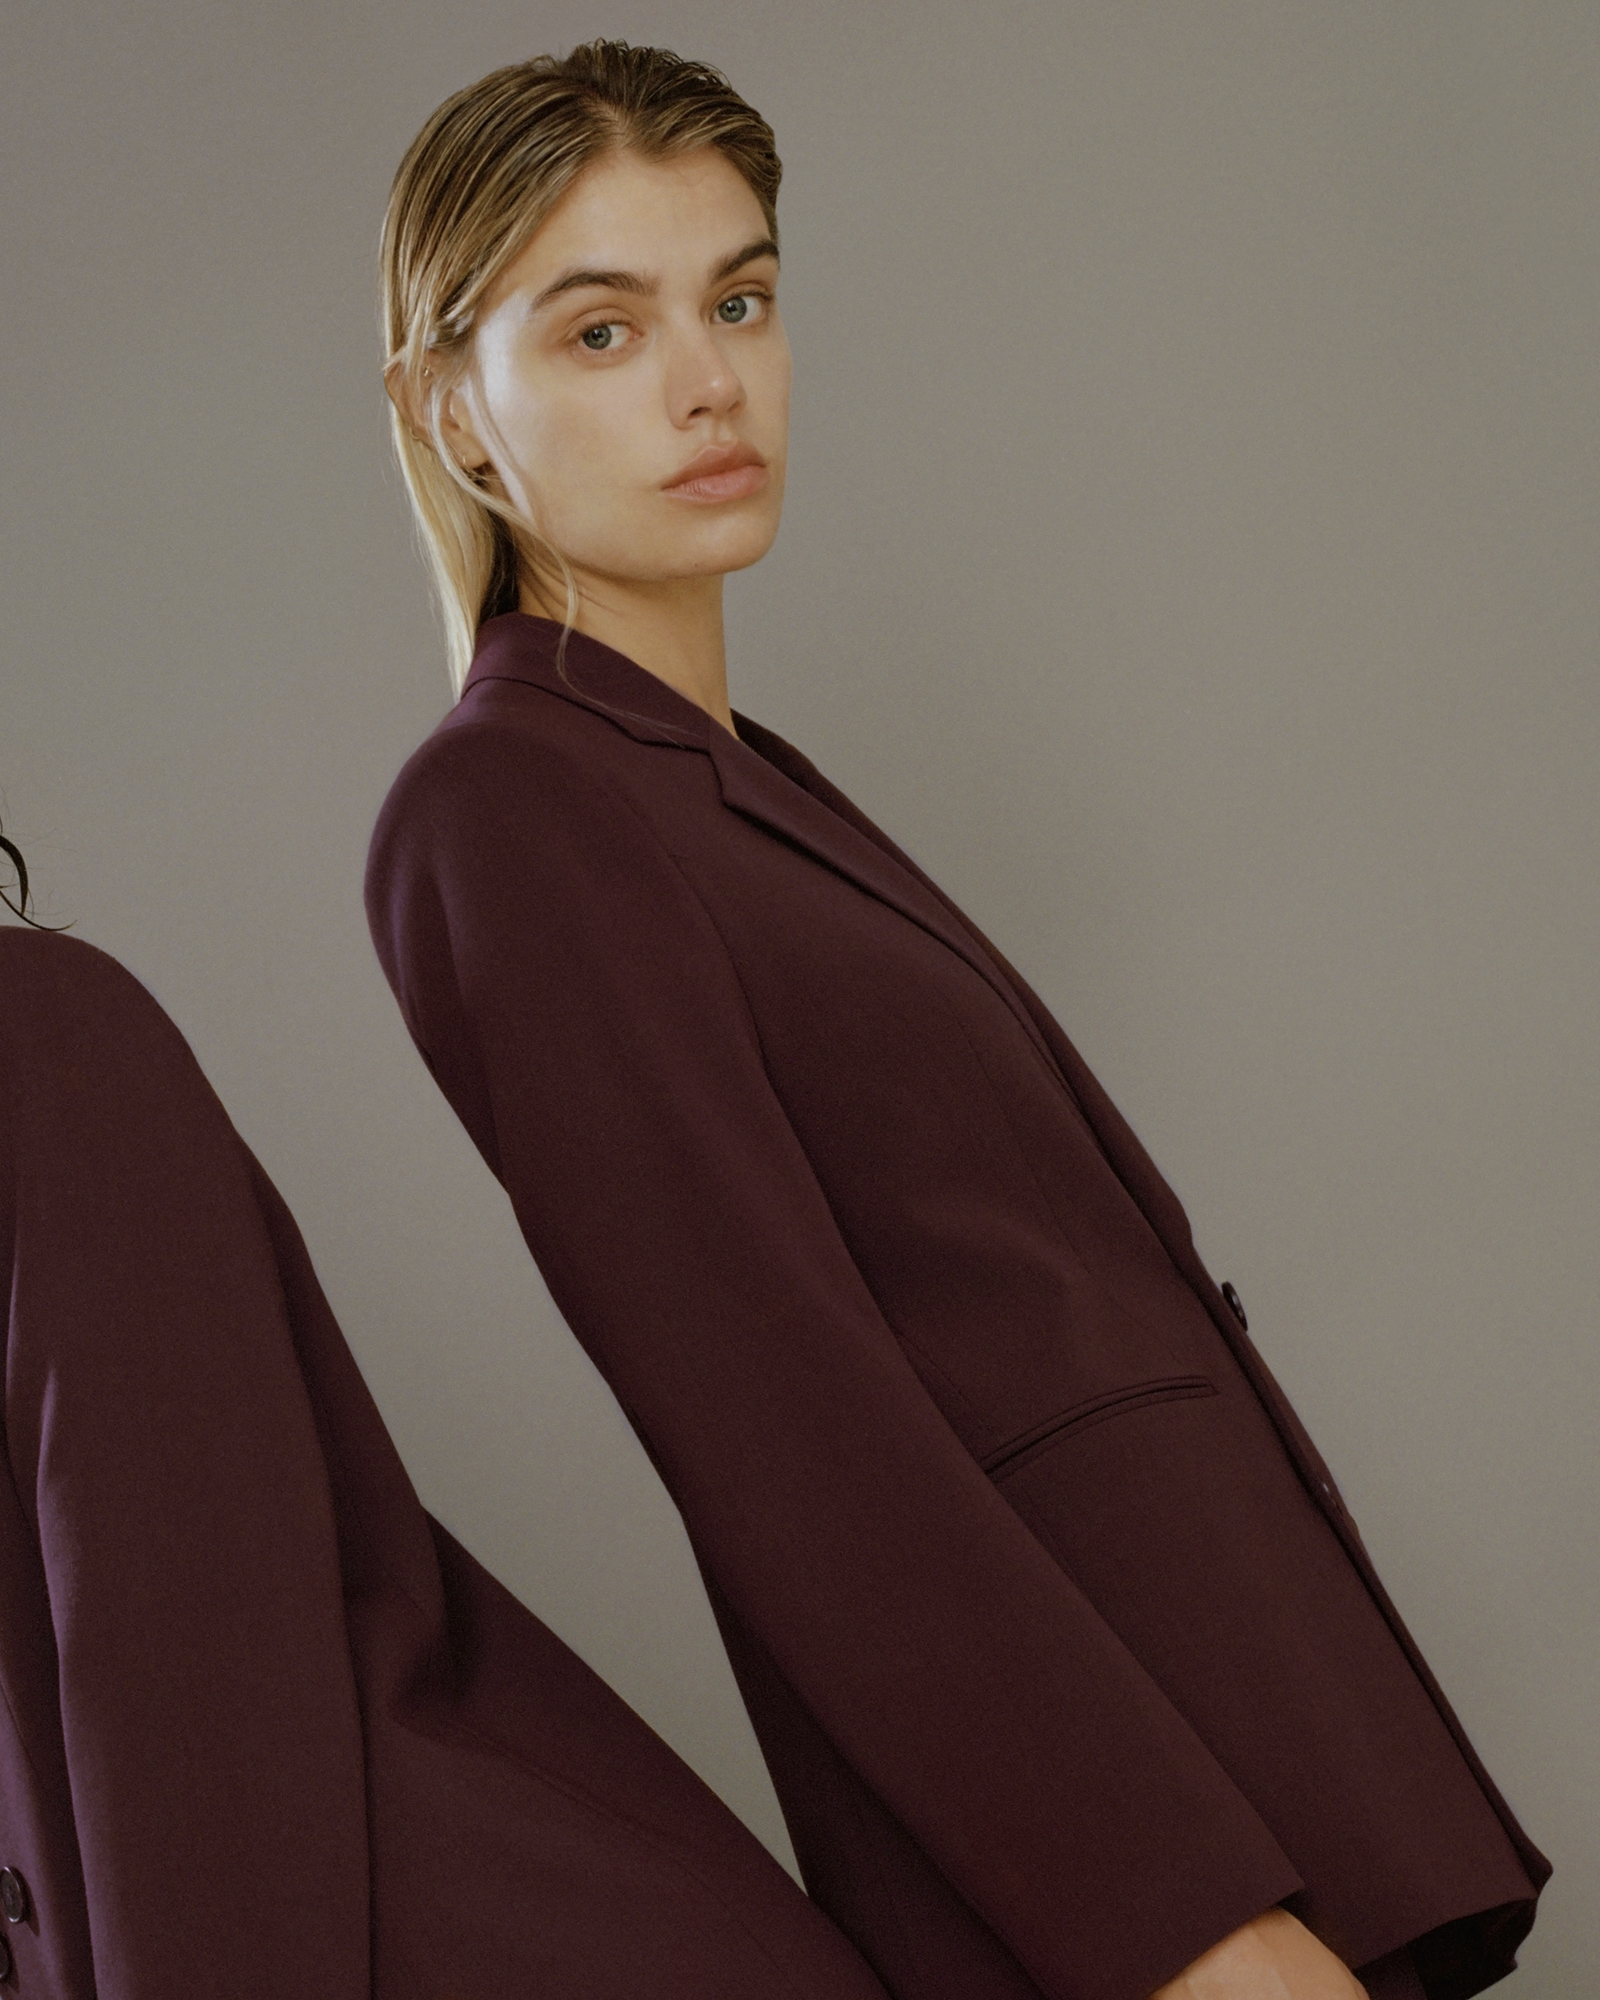 Photographed by Jose Solanes for Filippa K